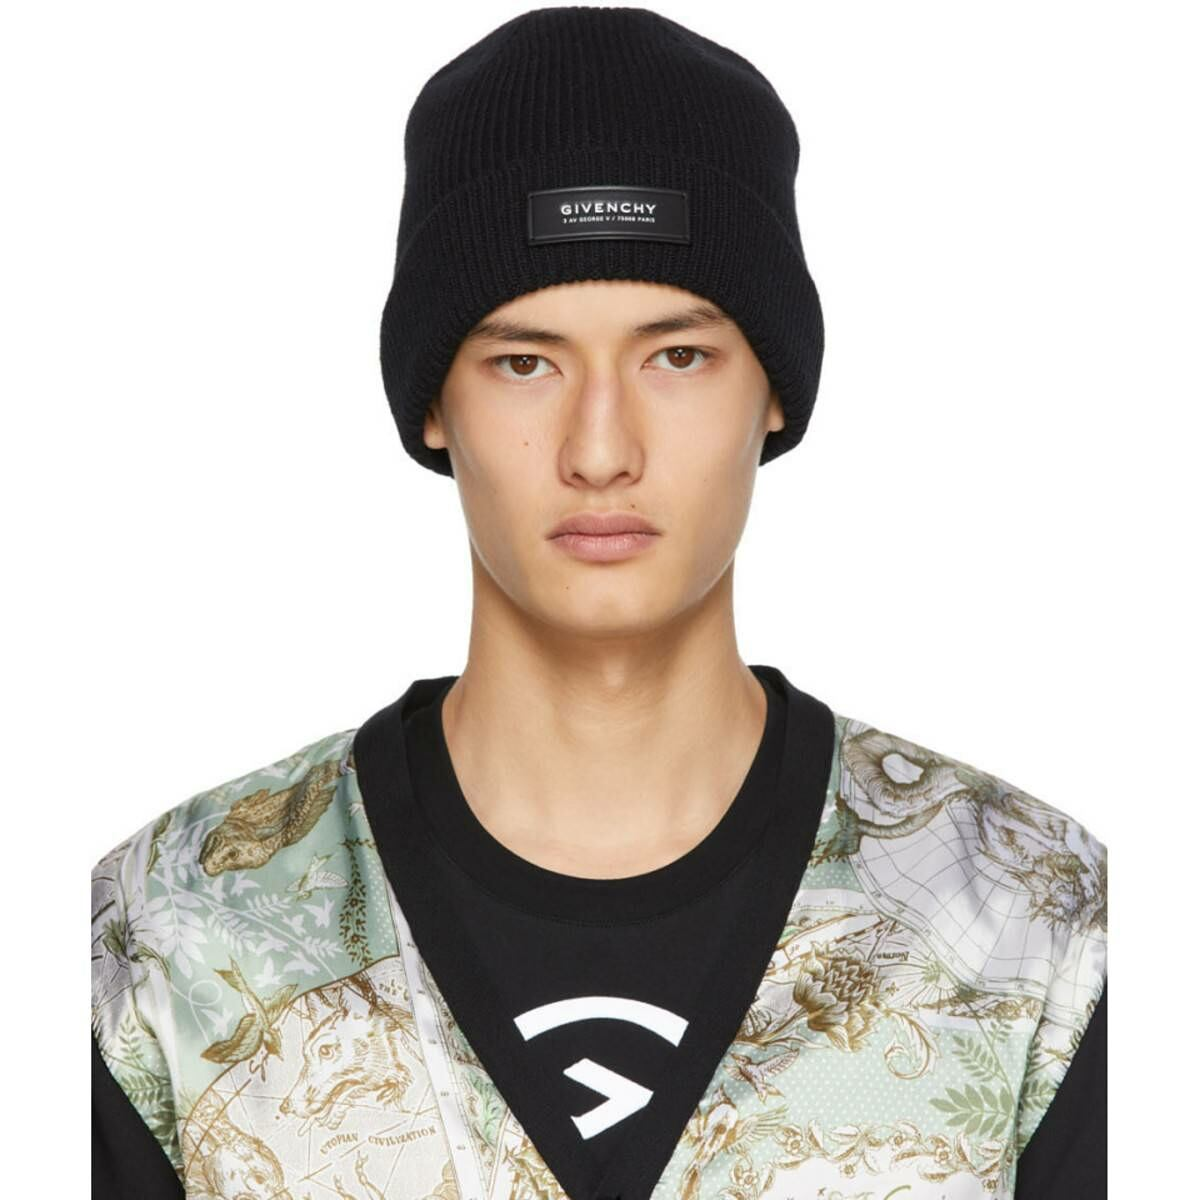 Givenchy Black Patch Beanie Ssense USA MEN Men ACCESSORIES Mens HATS